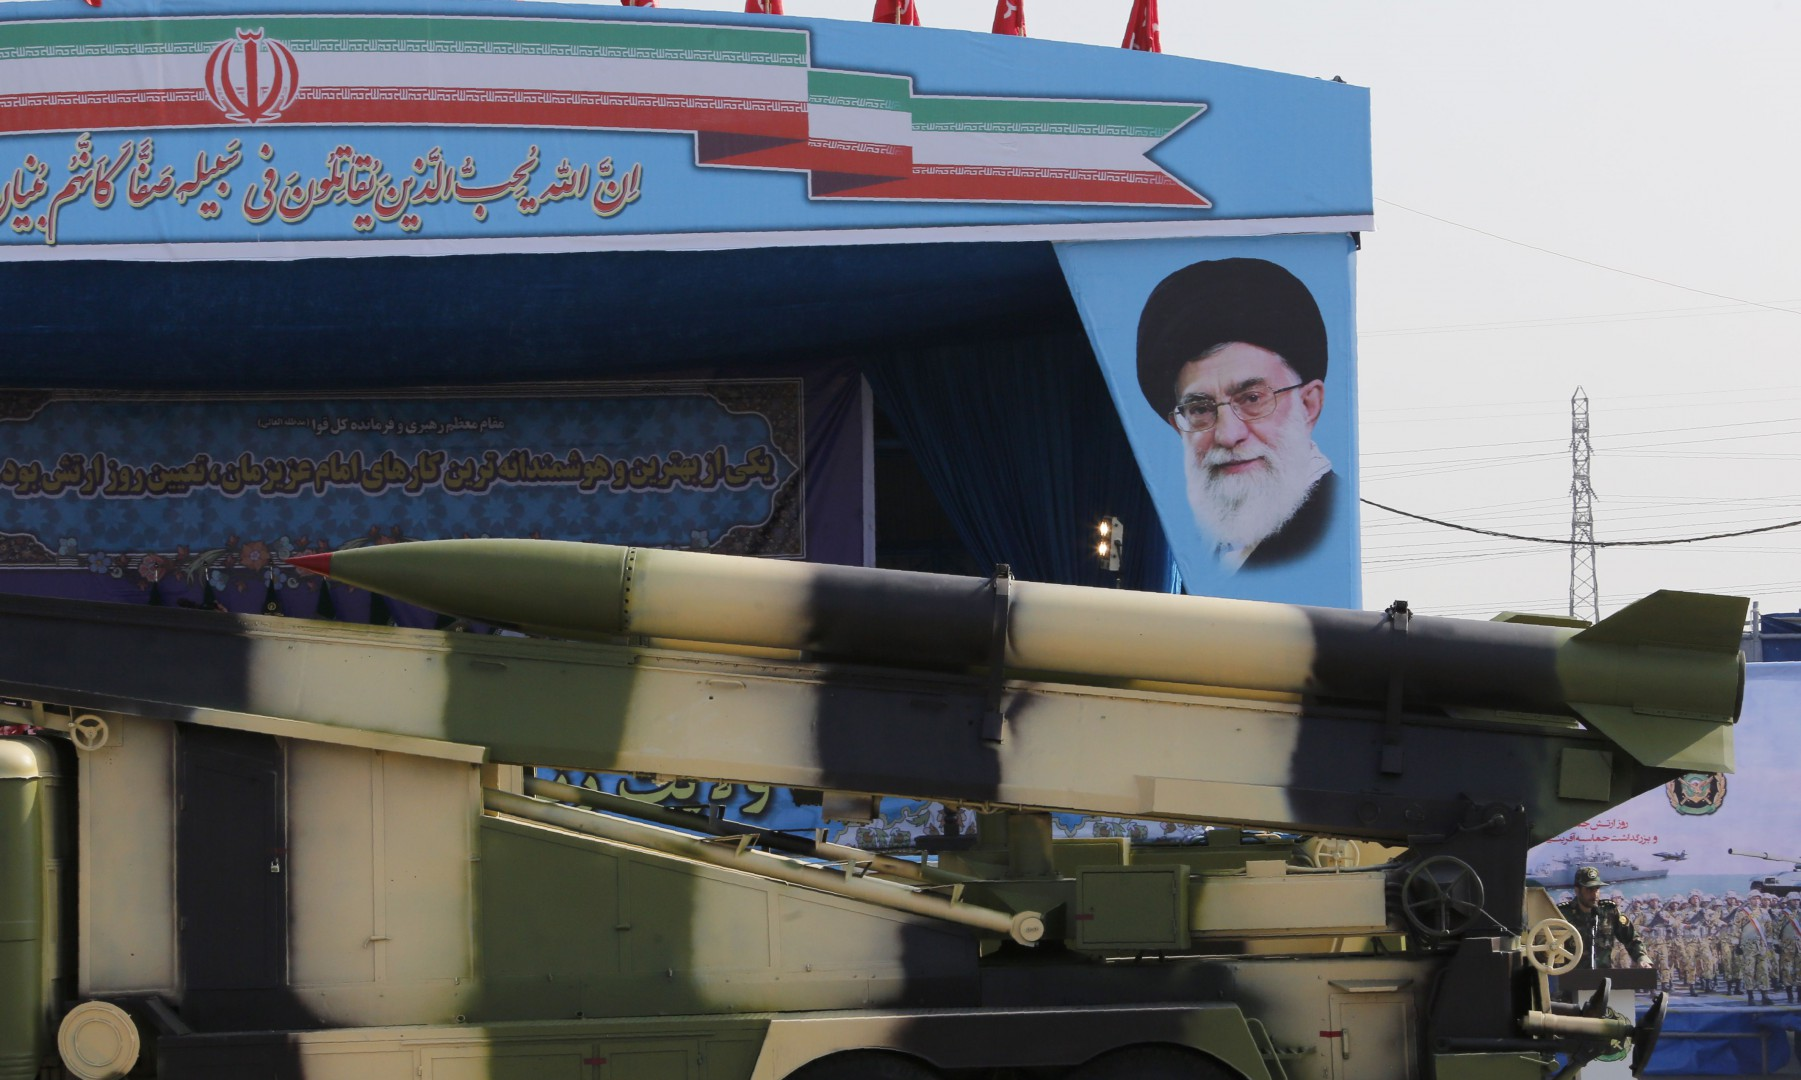 "An Iranian military truck carries missiles past a portrait of Iran's Supreme Leader Ayatollah Ali Khamenei during a parade on the occasion of the country's annual army day on April 18, 2018 in Tehran. President Hassan Rouhani said during the parade that Iran ""does not intend any aggression"" against its neighbours but will continue to produce all the weapons it needs for its defence. / AFP PHOTO / ATTA KENARE"